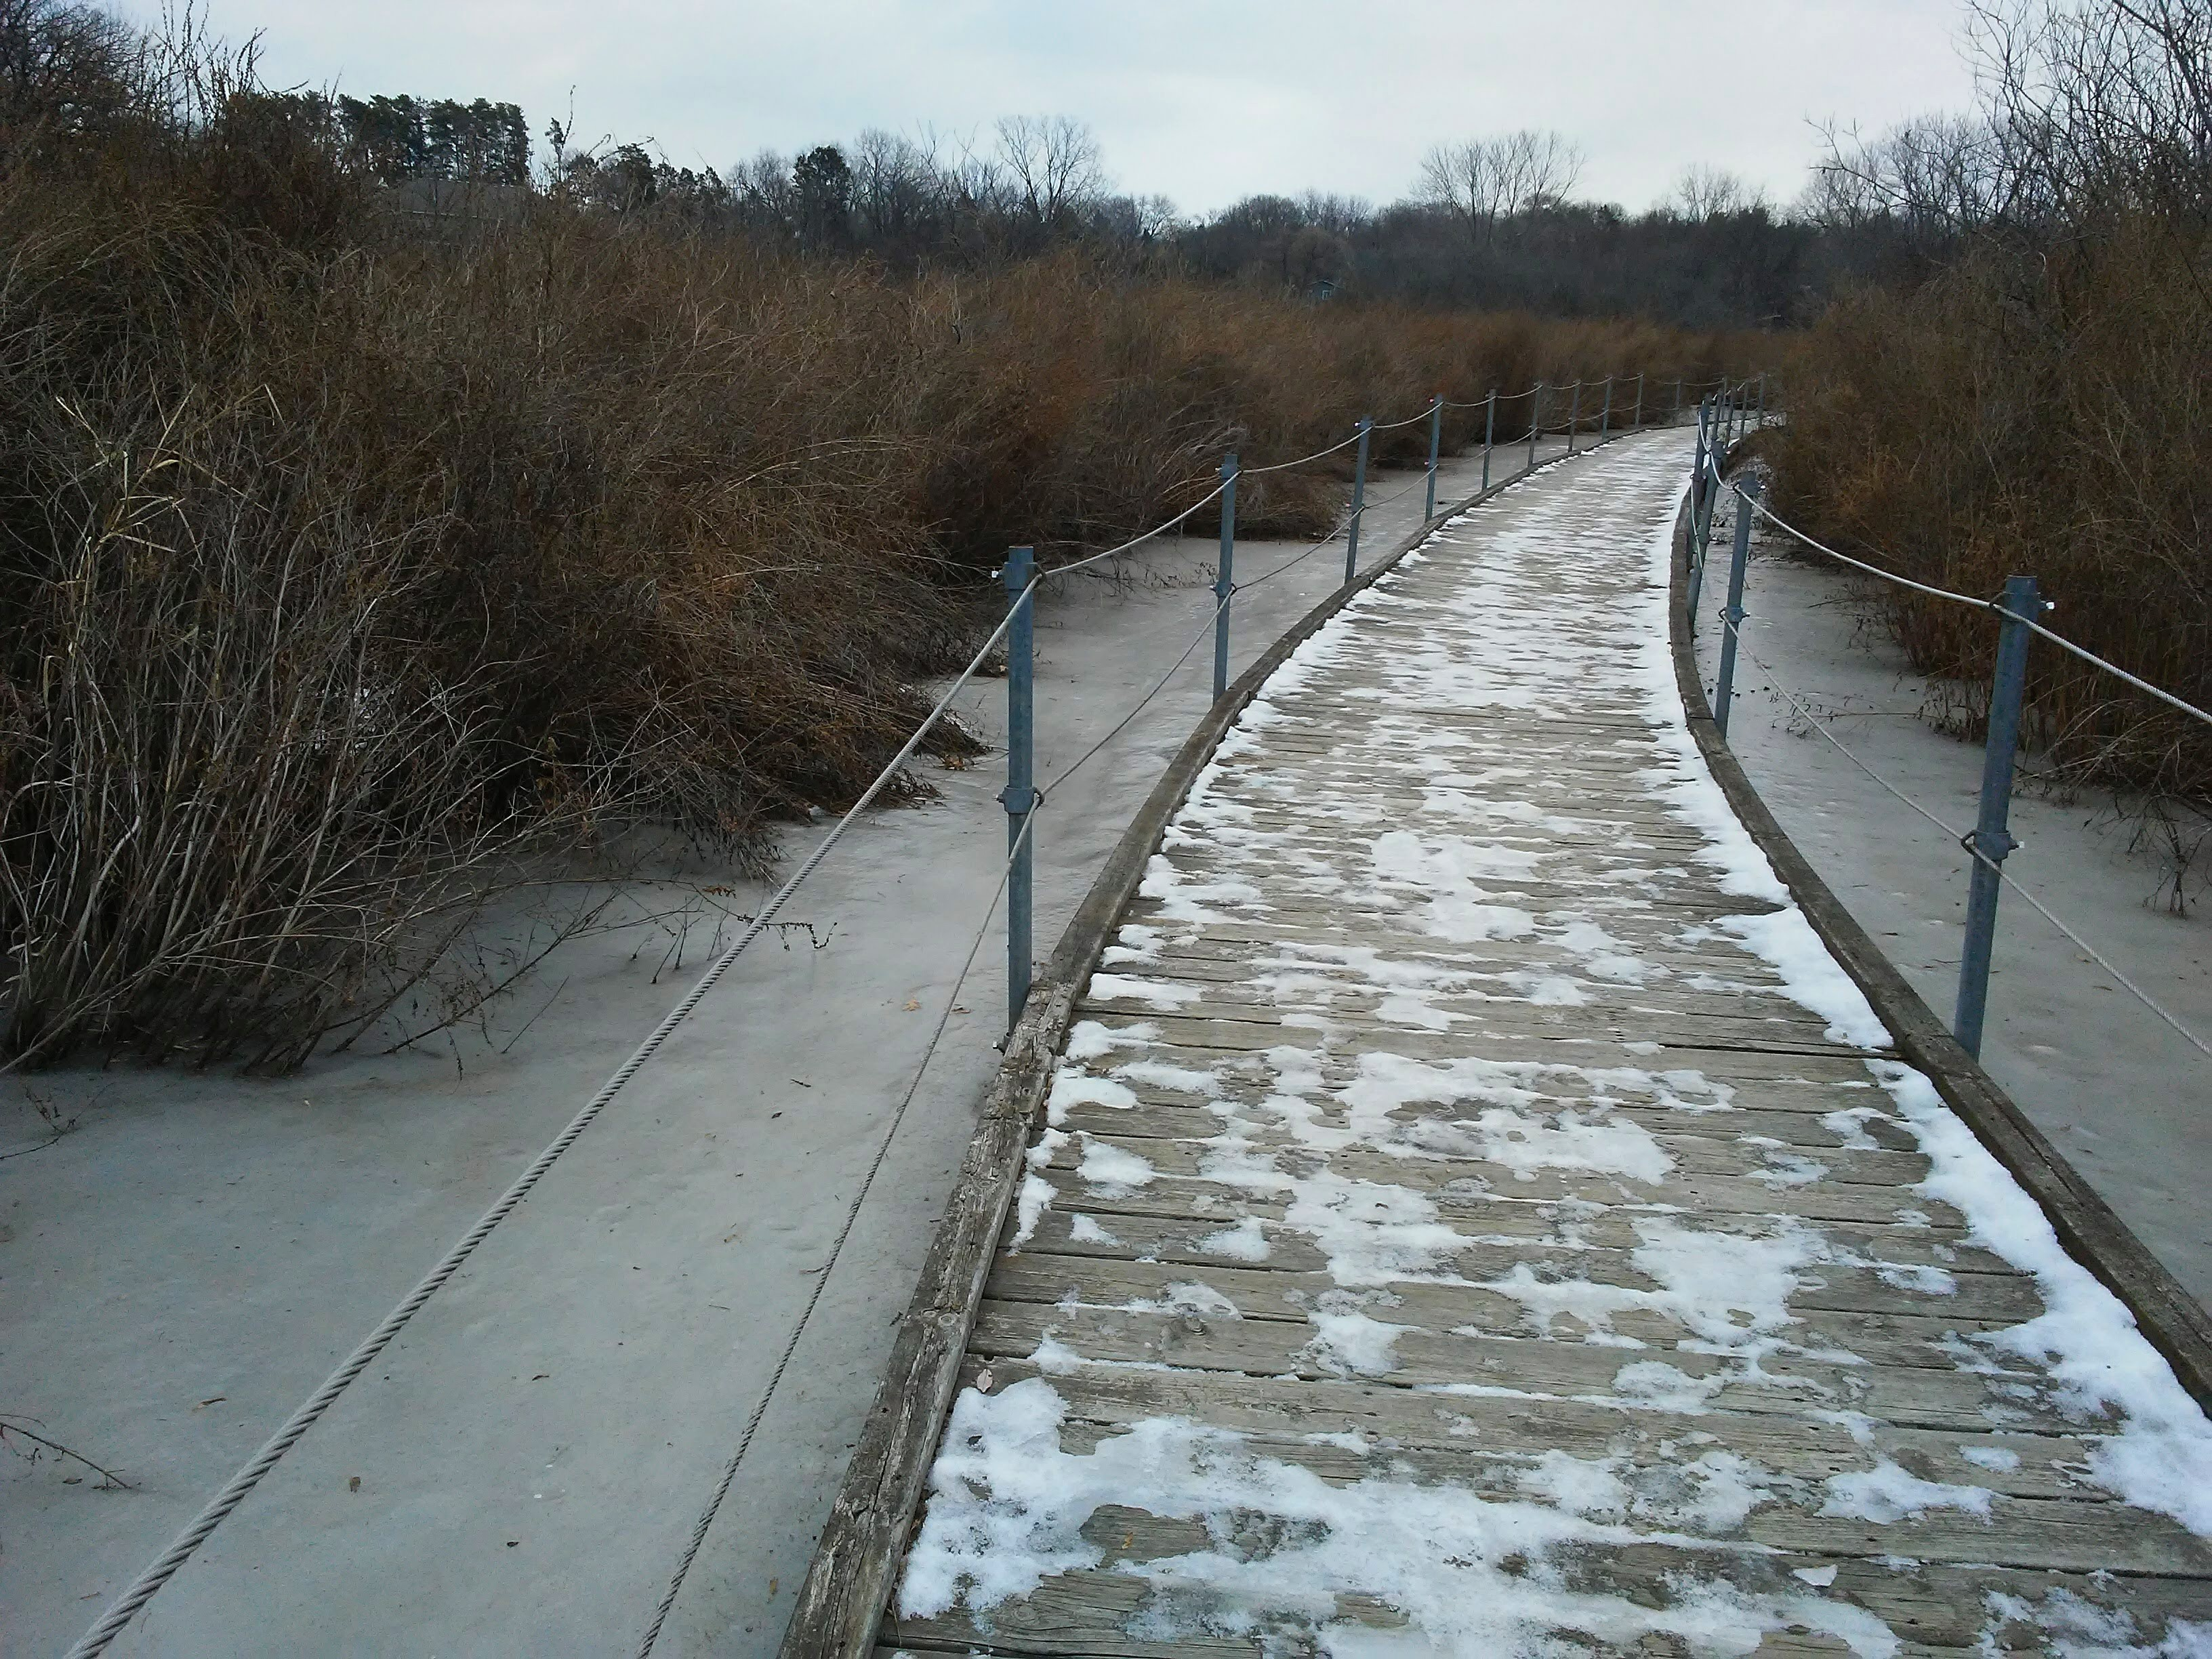 Boardwalk with railings. snow on ground. wetland.